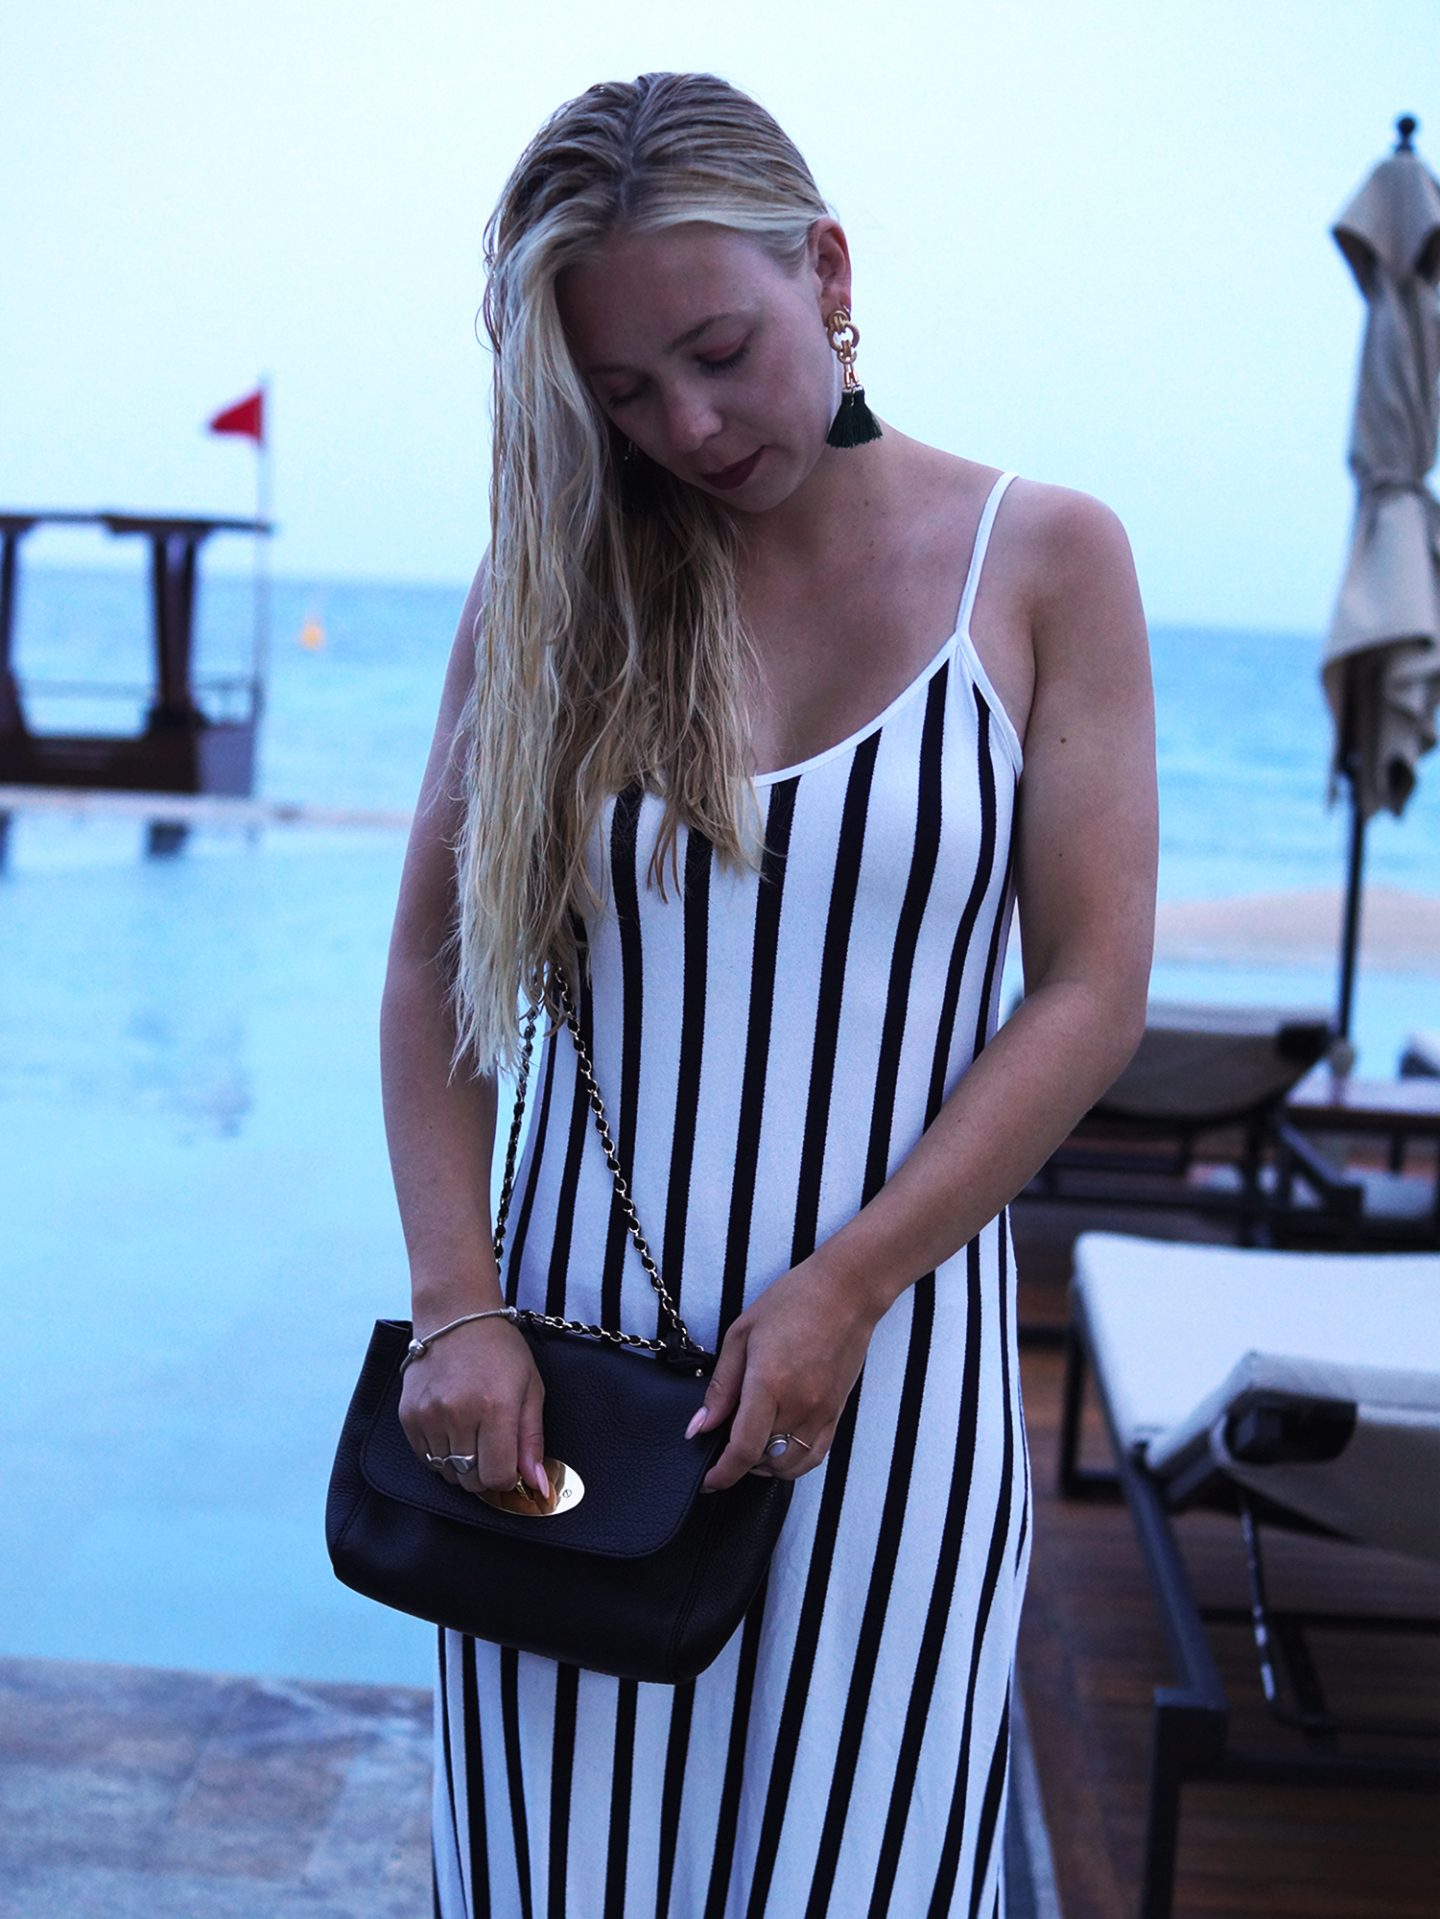 The Mexico Diaries – the outfits